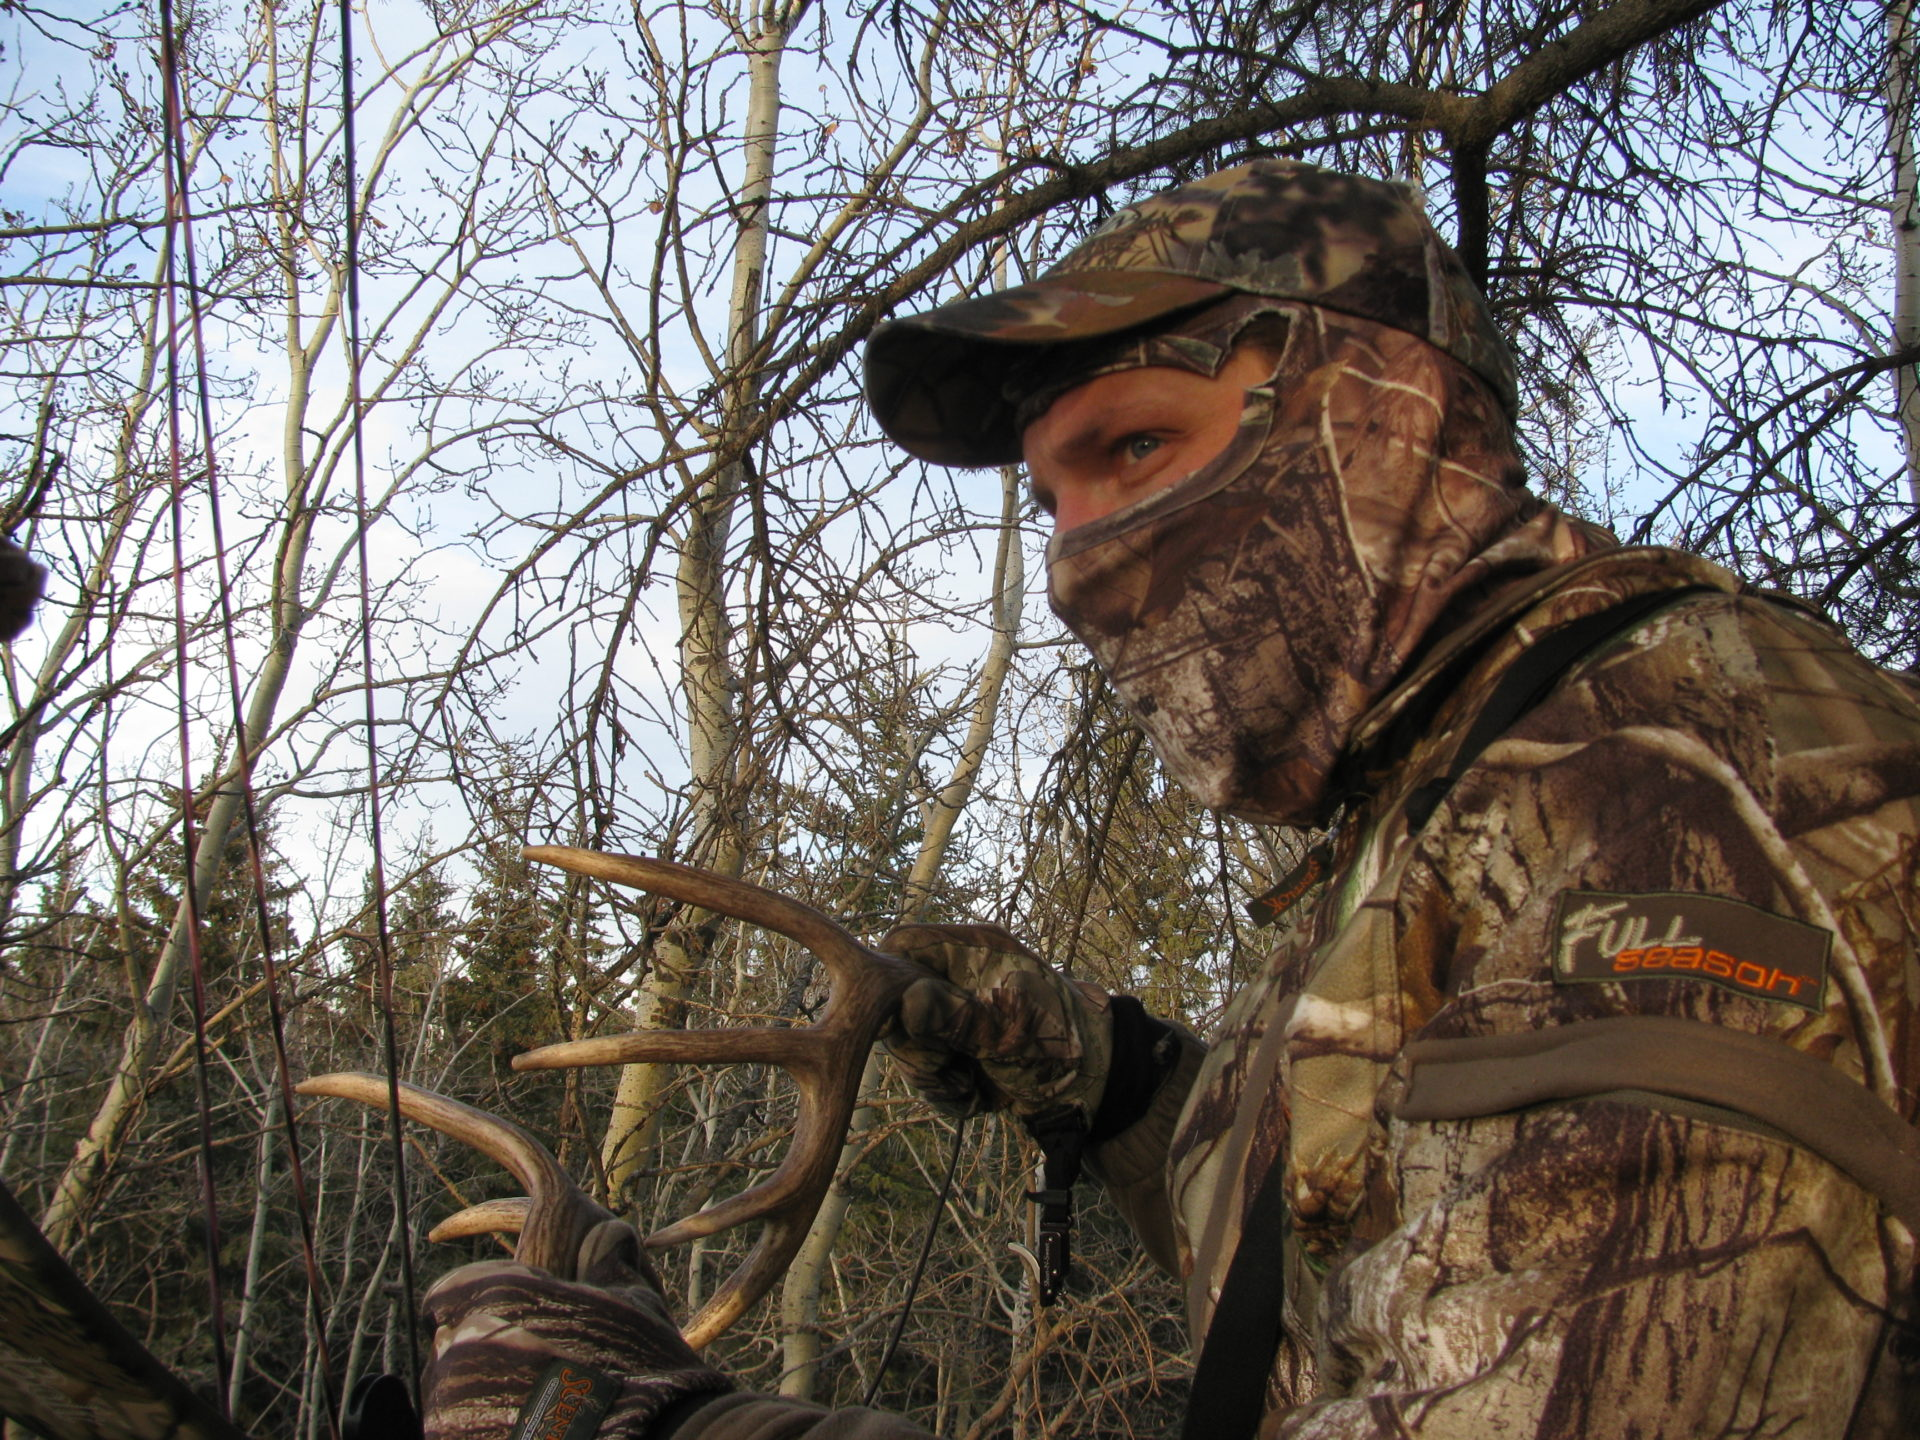 It's a good idea to bring antlers with you for rattling, or a deer call. You might not need them, but if you spot a deer on another trail and he's within earshot, it will be worth it to try.